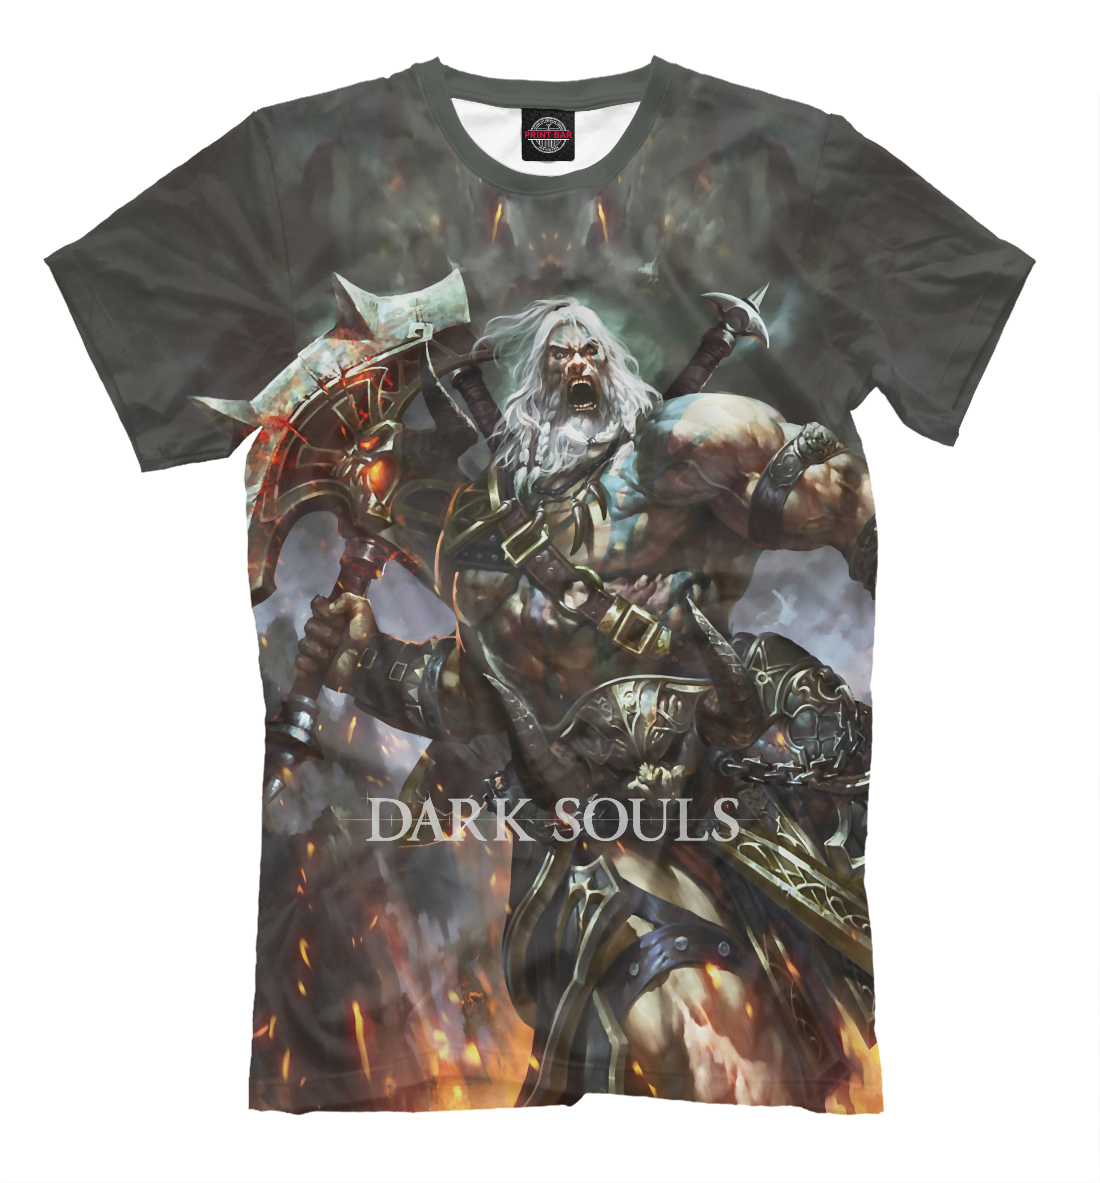 Купить Dark Souls, Printbar, Футболки, DKS-483926-fut-2